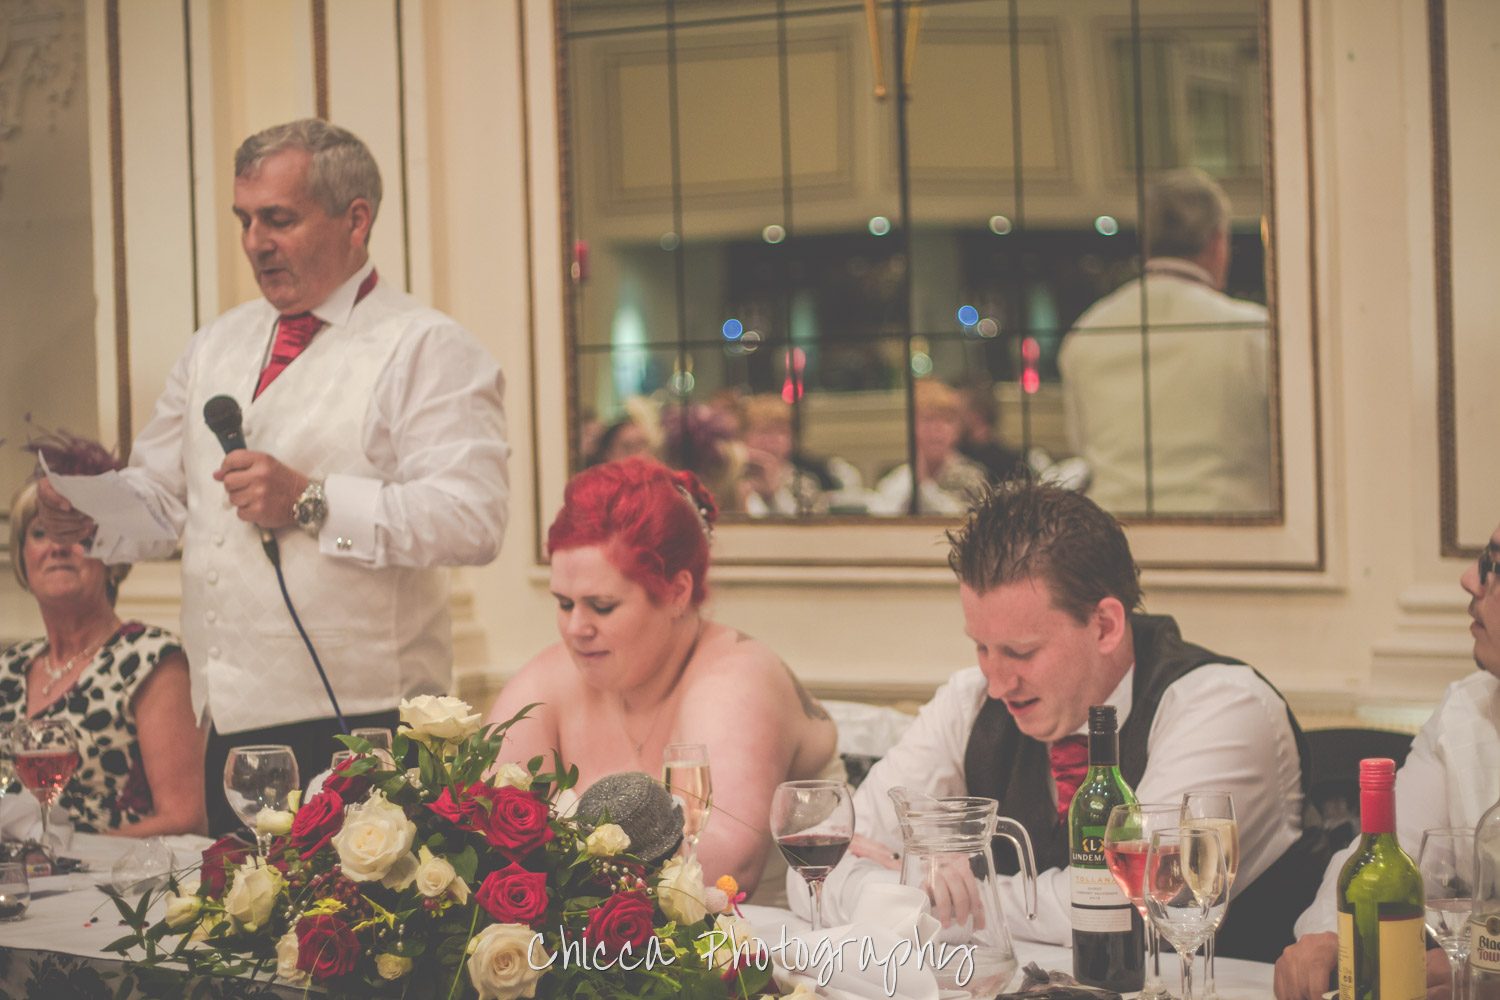 midland-hotel-bradford-wedding-photography-chicca-49.jpg